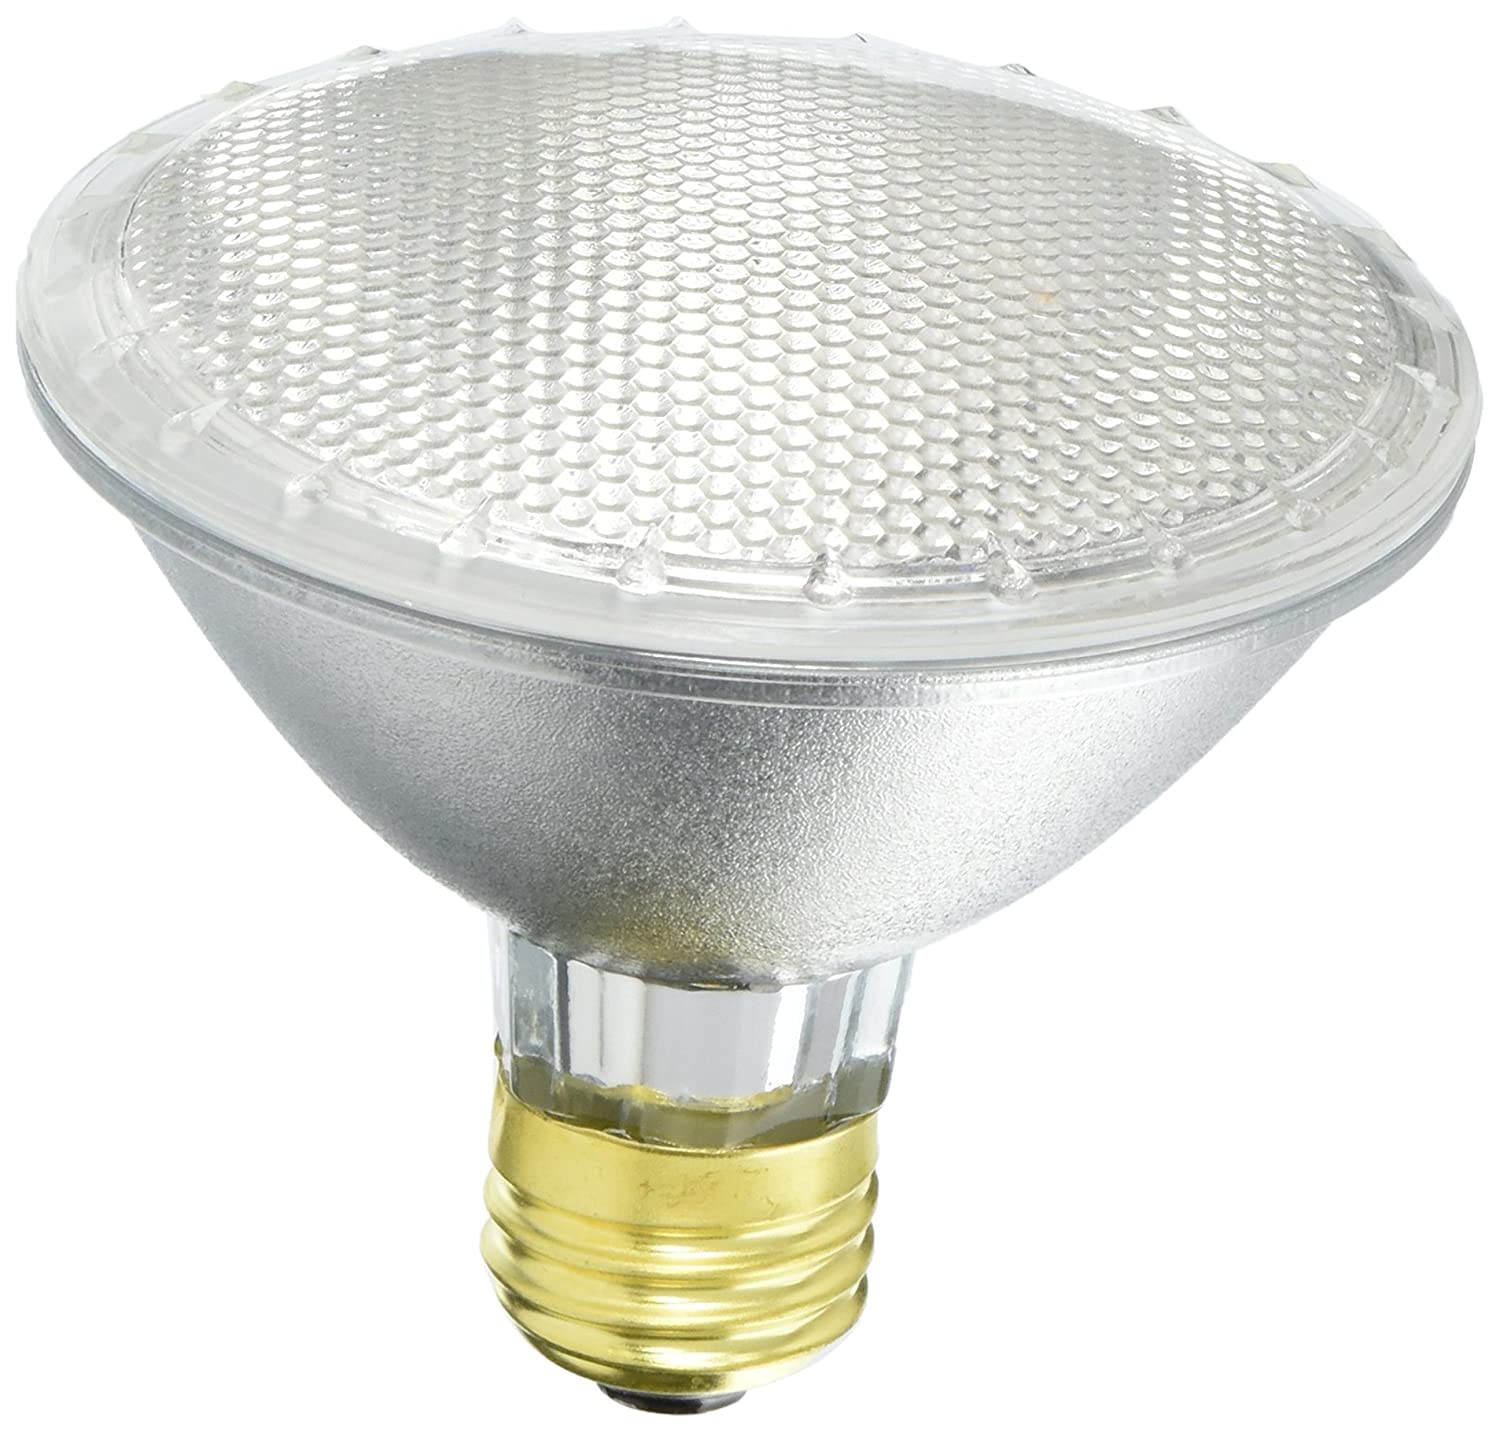 Feit Electric 35par30 s qfl es Energy Saving Halogen Floodlight Bulb 35 Watts